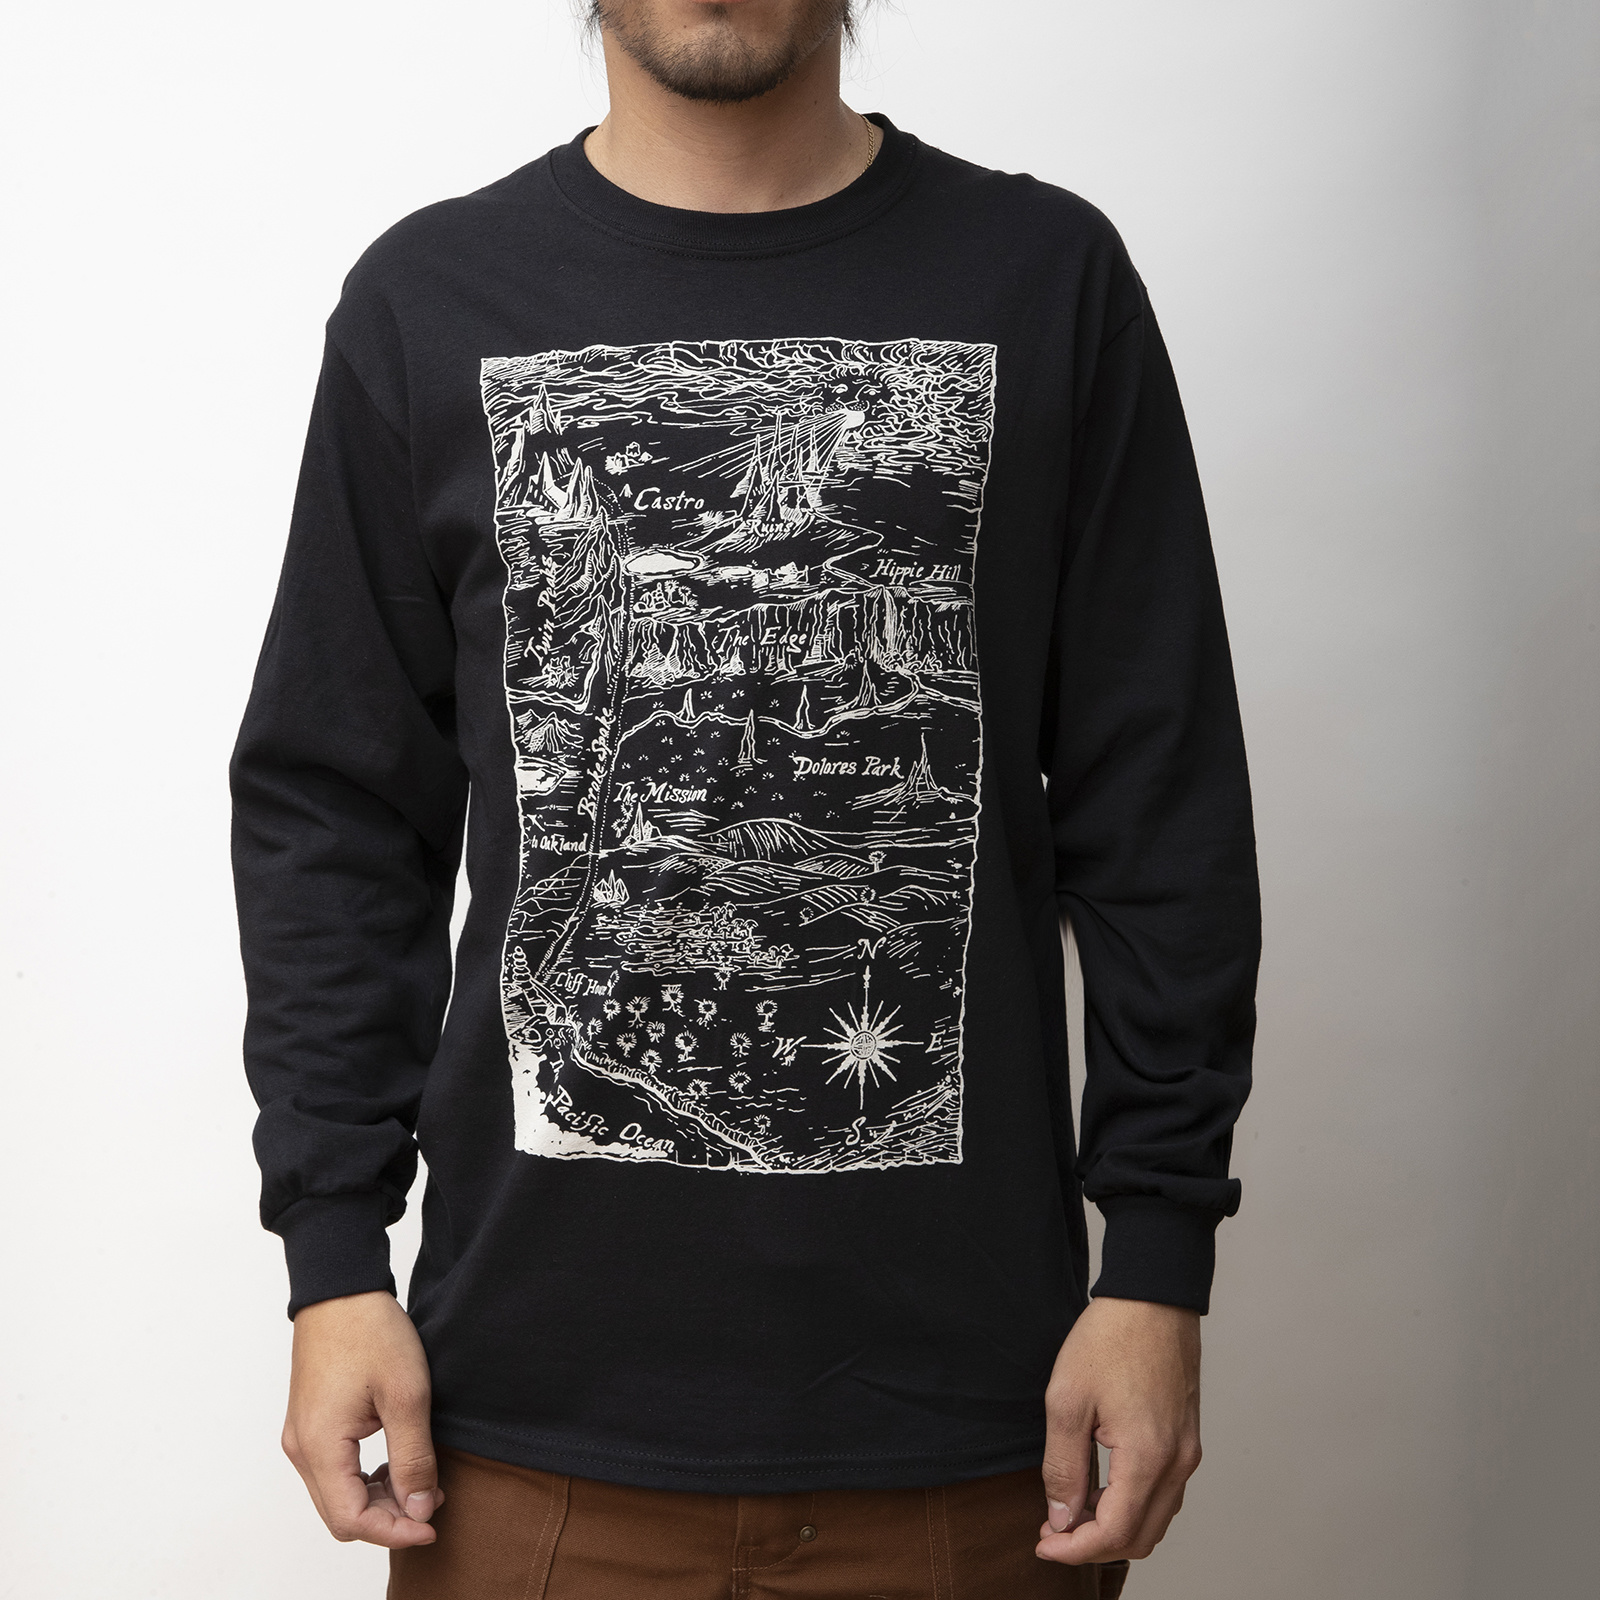 MASH Ruins Long Sleeve Shirt Black with Bleach